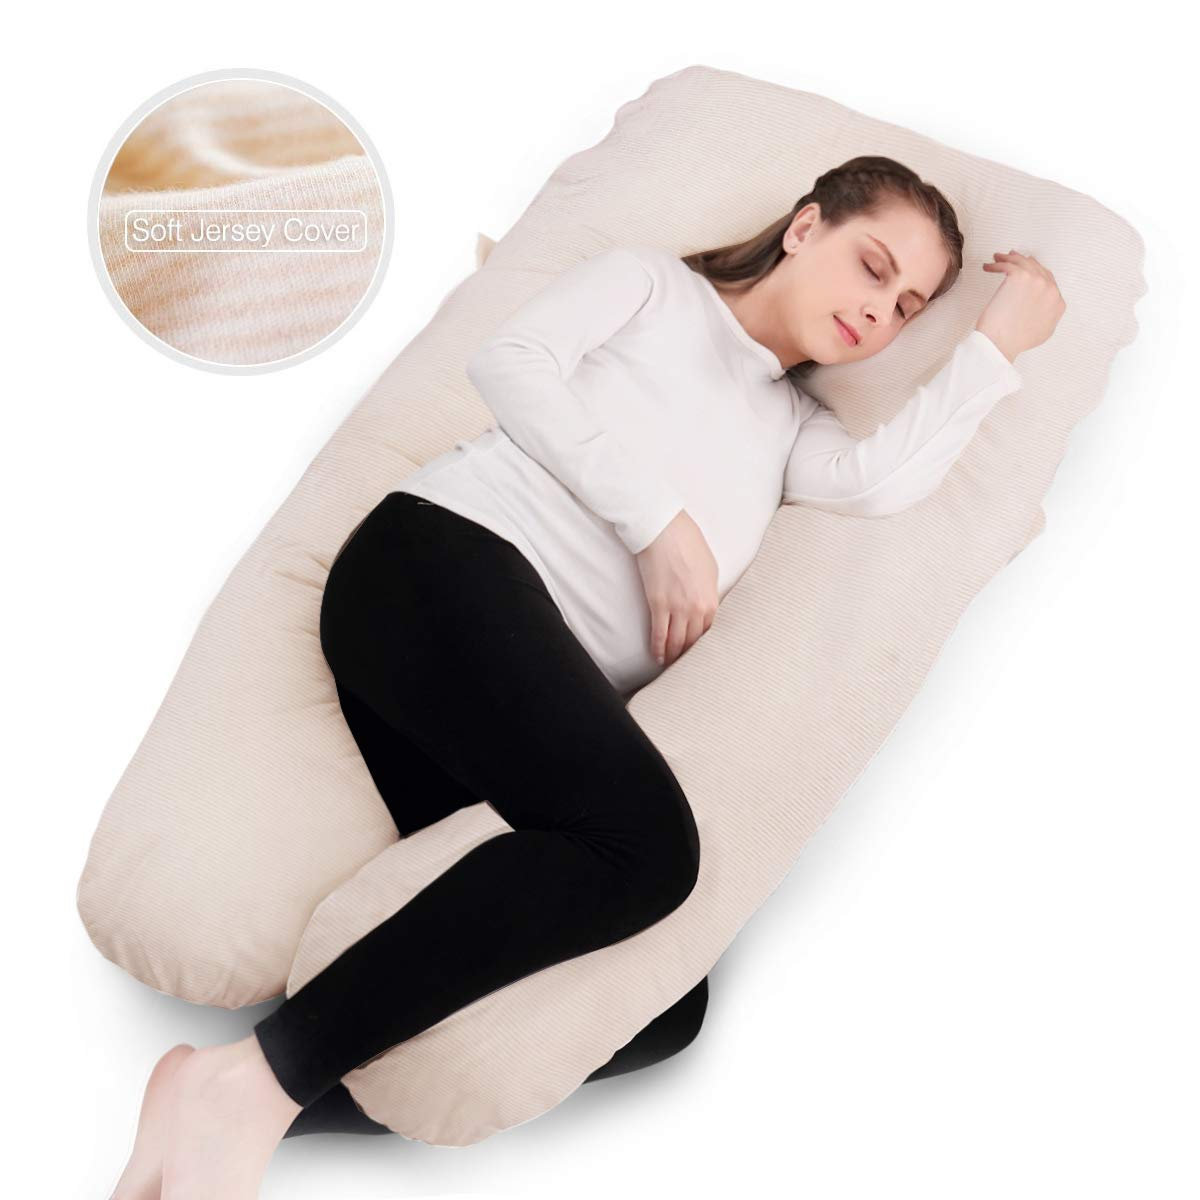 Dream Pregnancy Body Pillow - Maternity Nursing Pillow - with Jersey Washable Cover - U Shaped - for Sleeping and Relieving Back Pain - Creamy Stripe